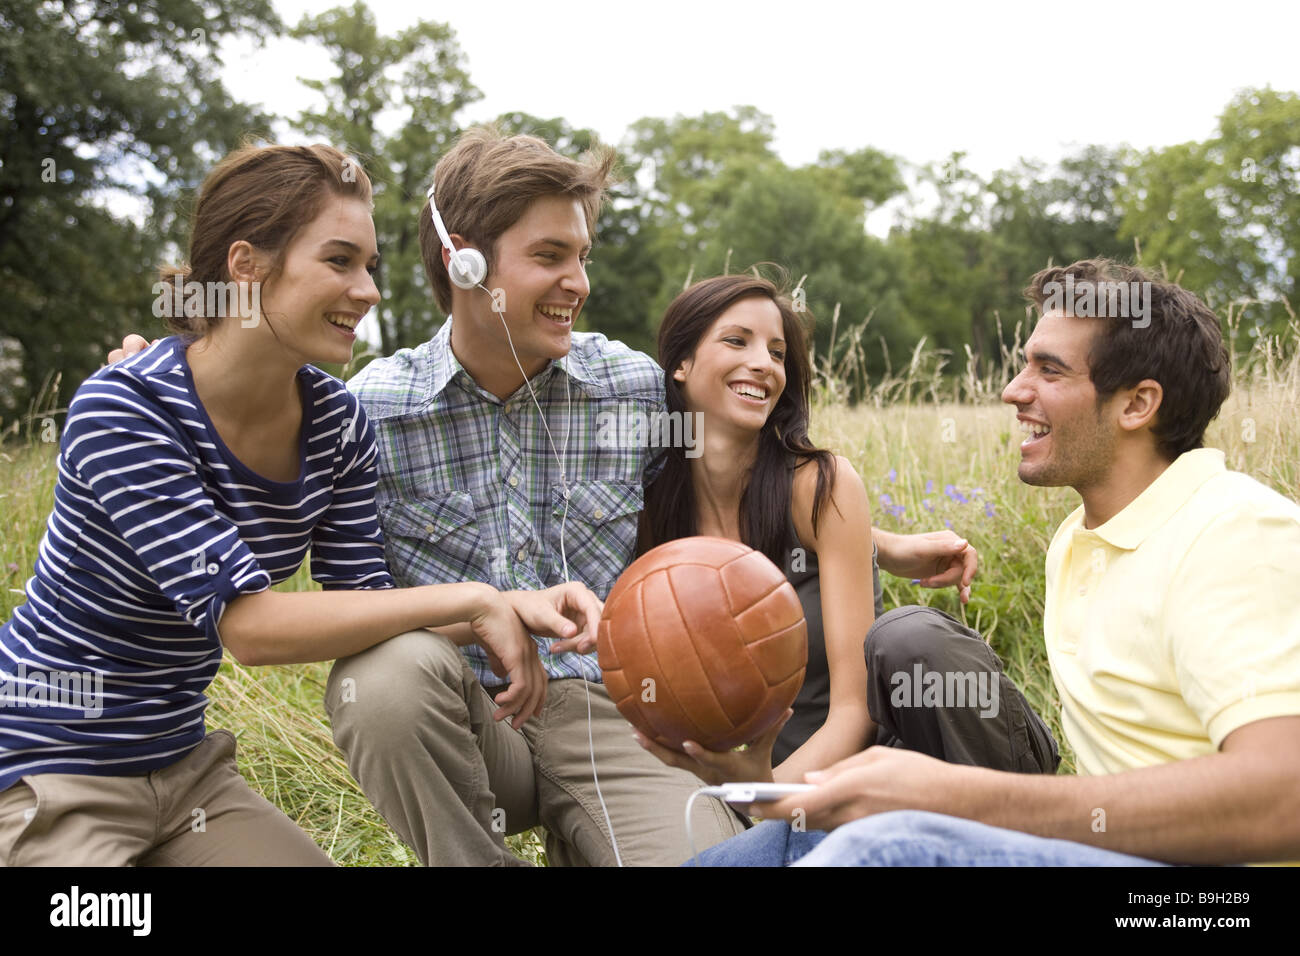 Group Leisure Time Activities Ball Mp3 Music Hears Nature